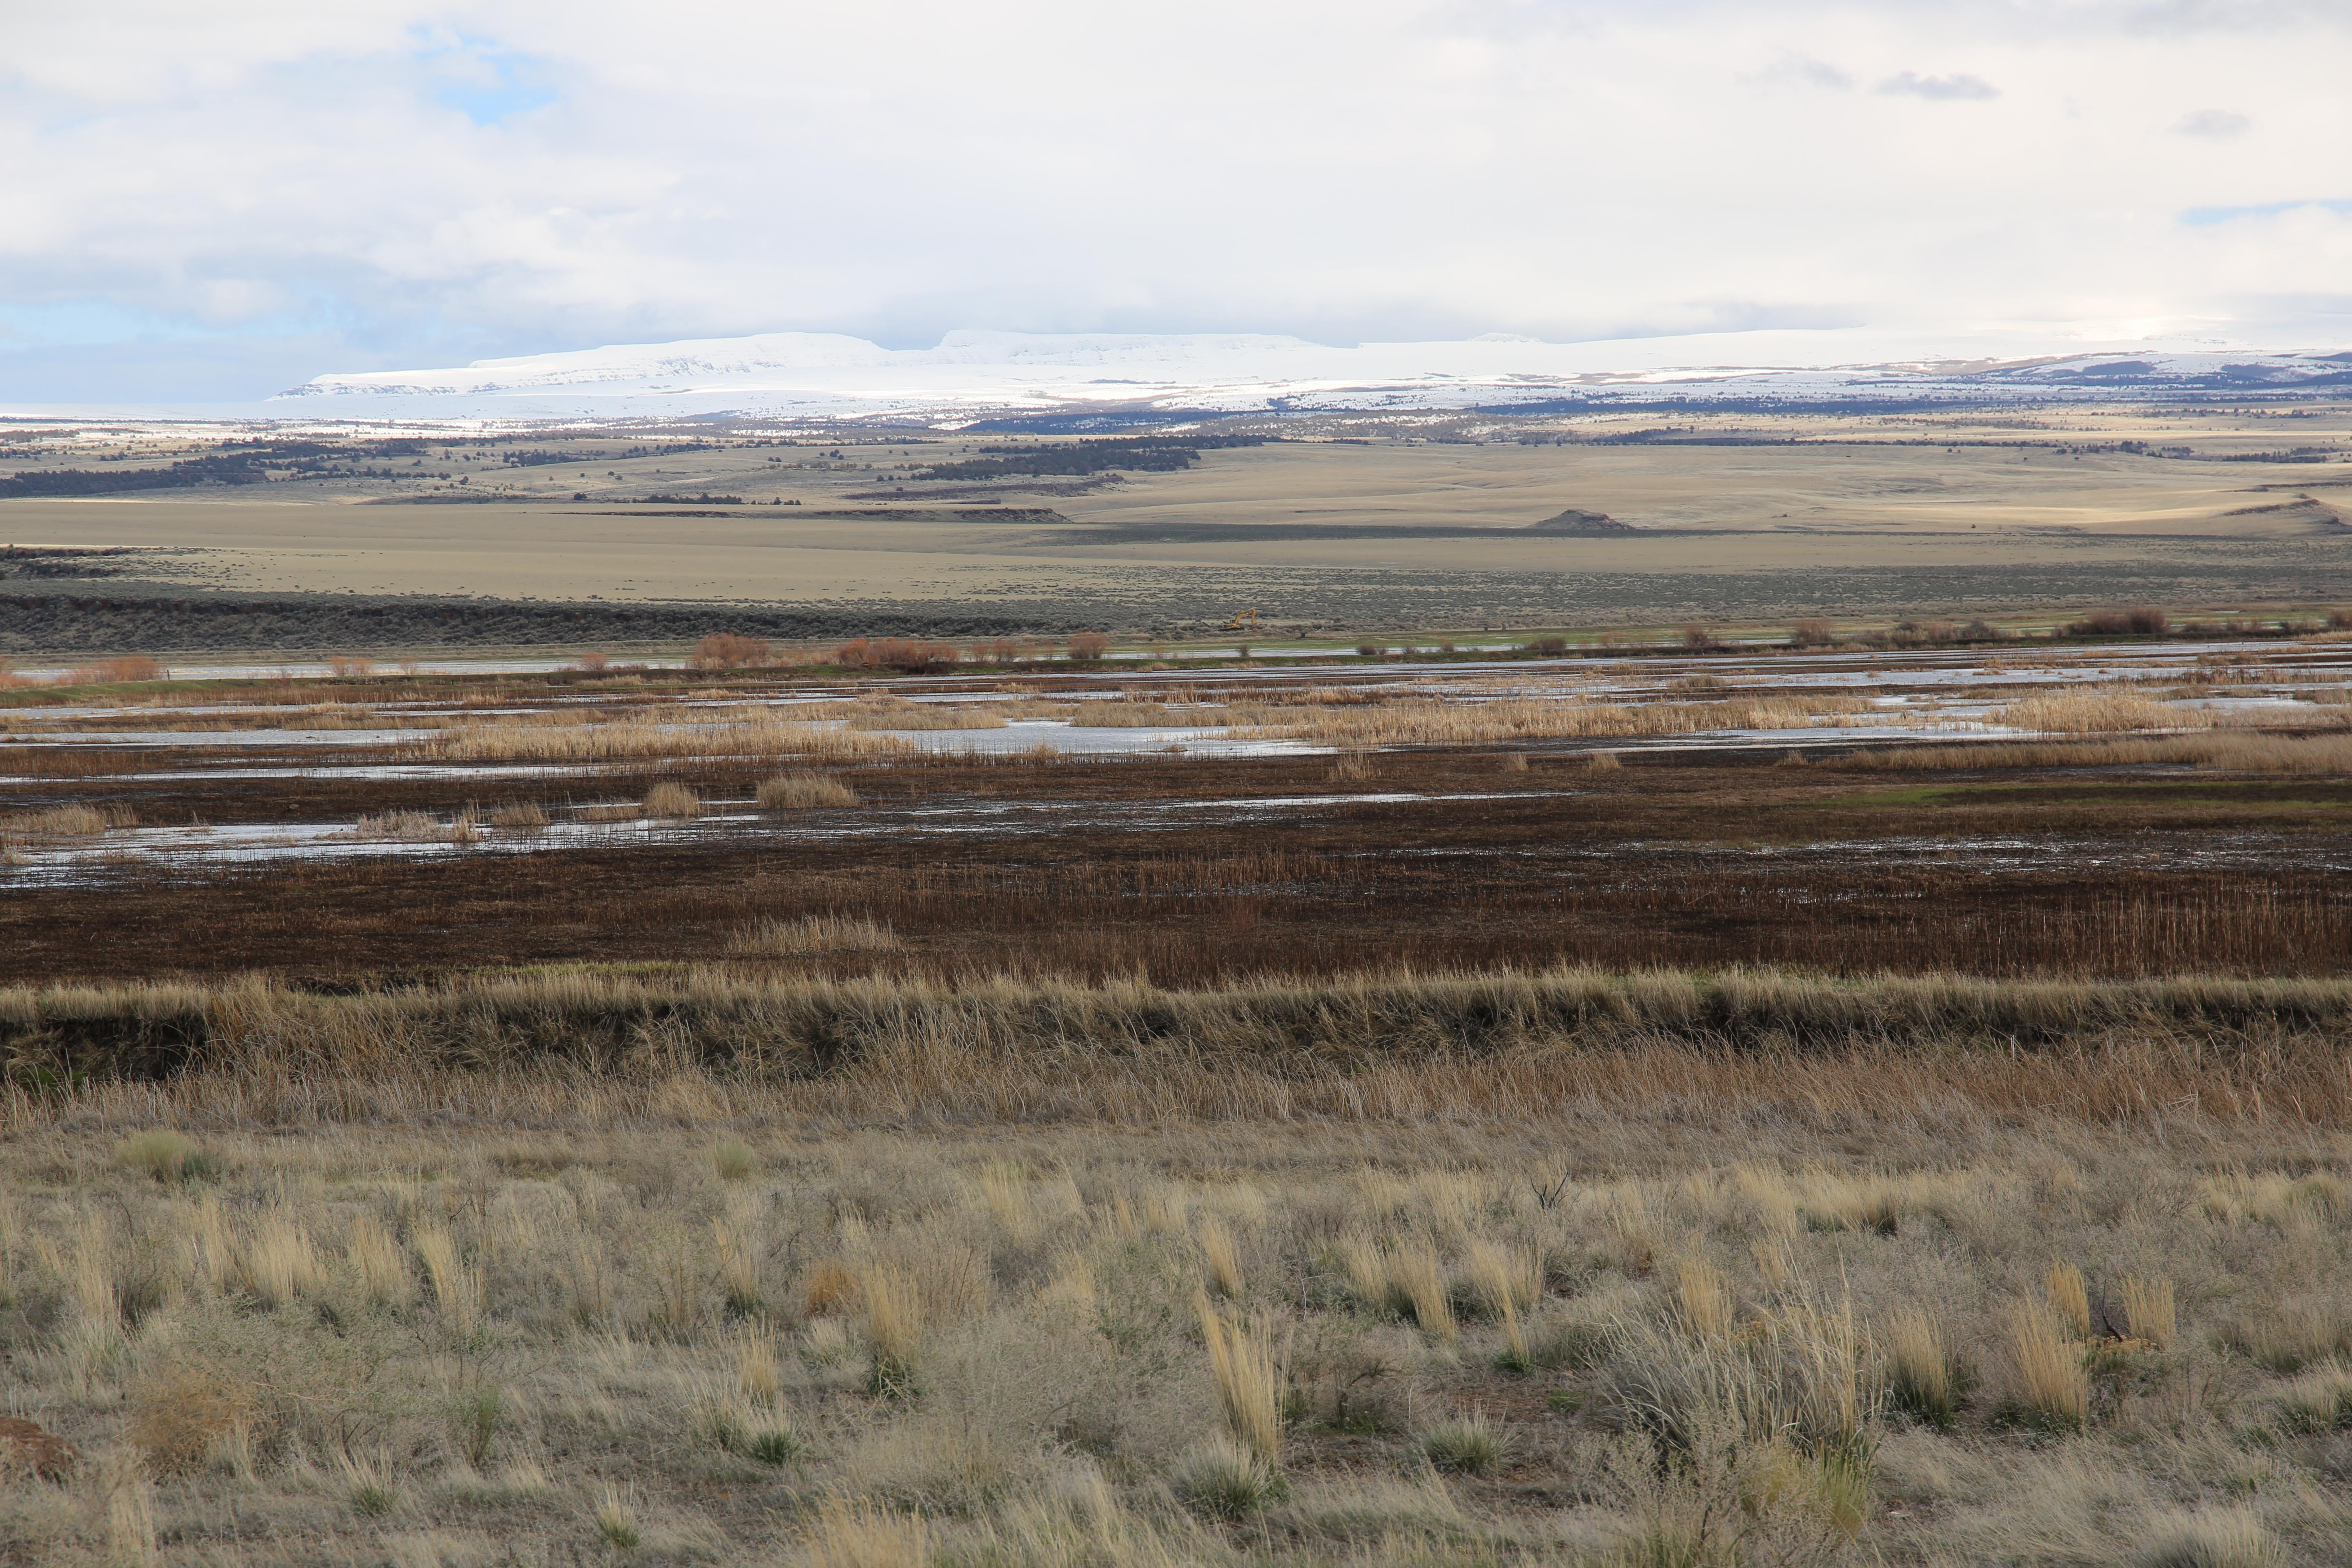 A view of the Steens Mountains from the Malheur National Wildlife Refuge on April 13, 2019.